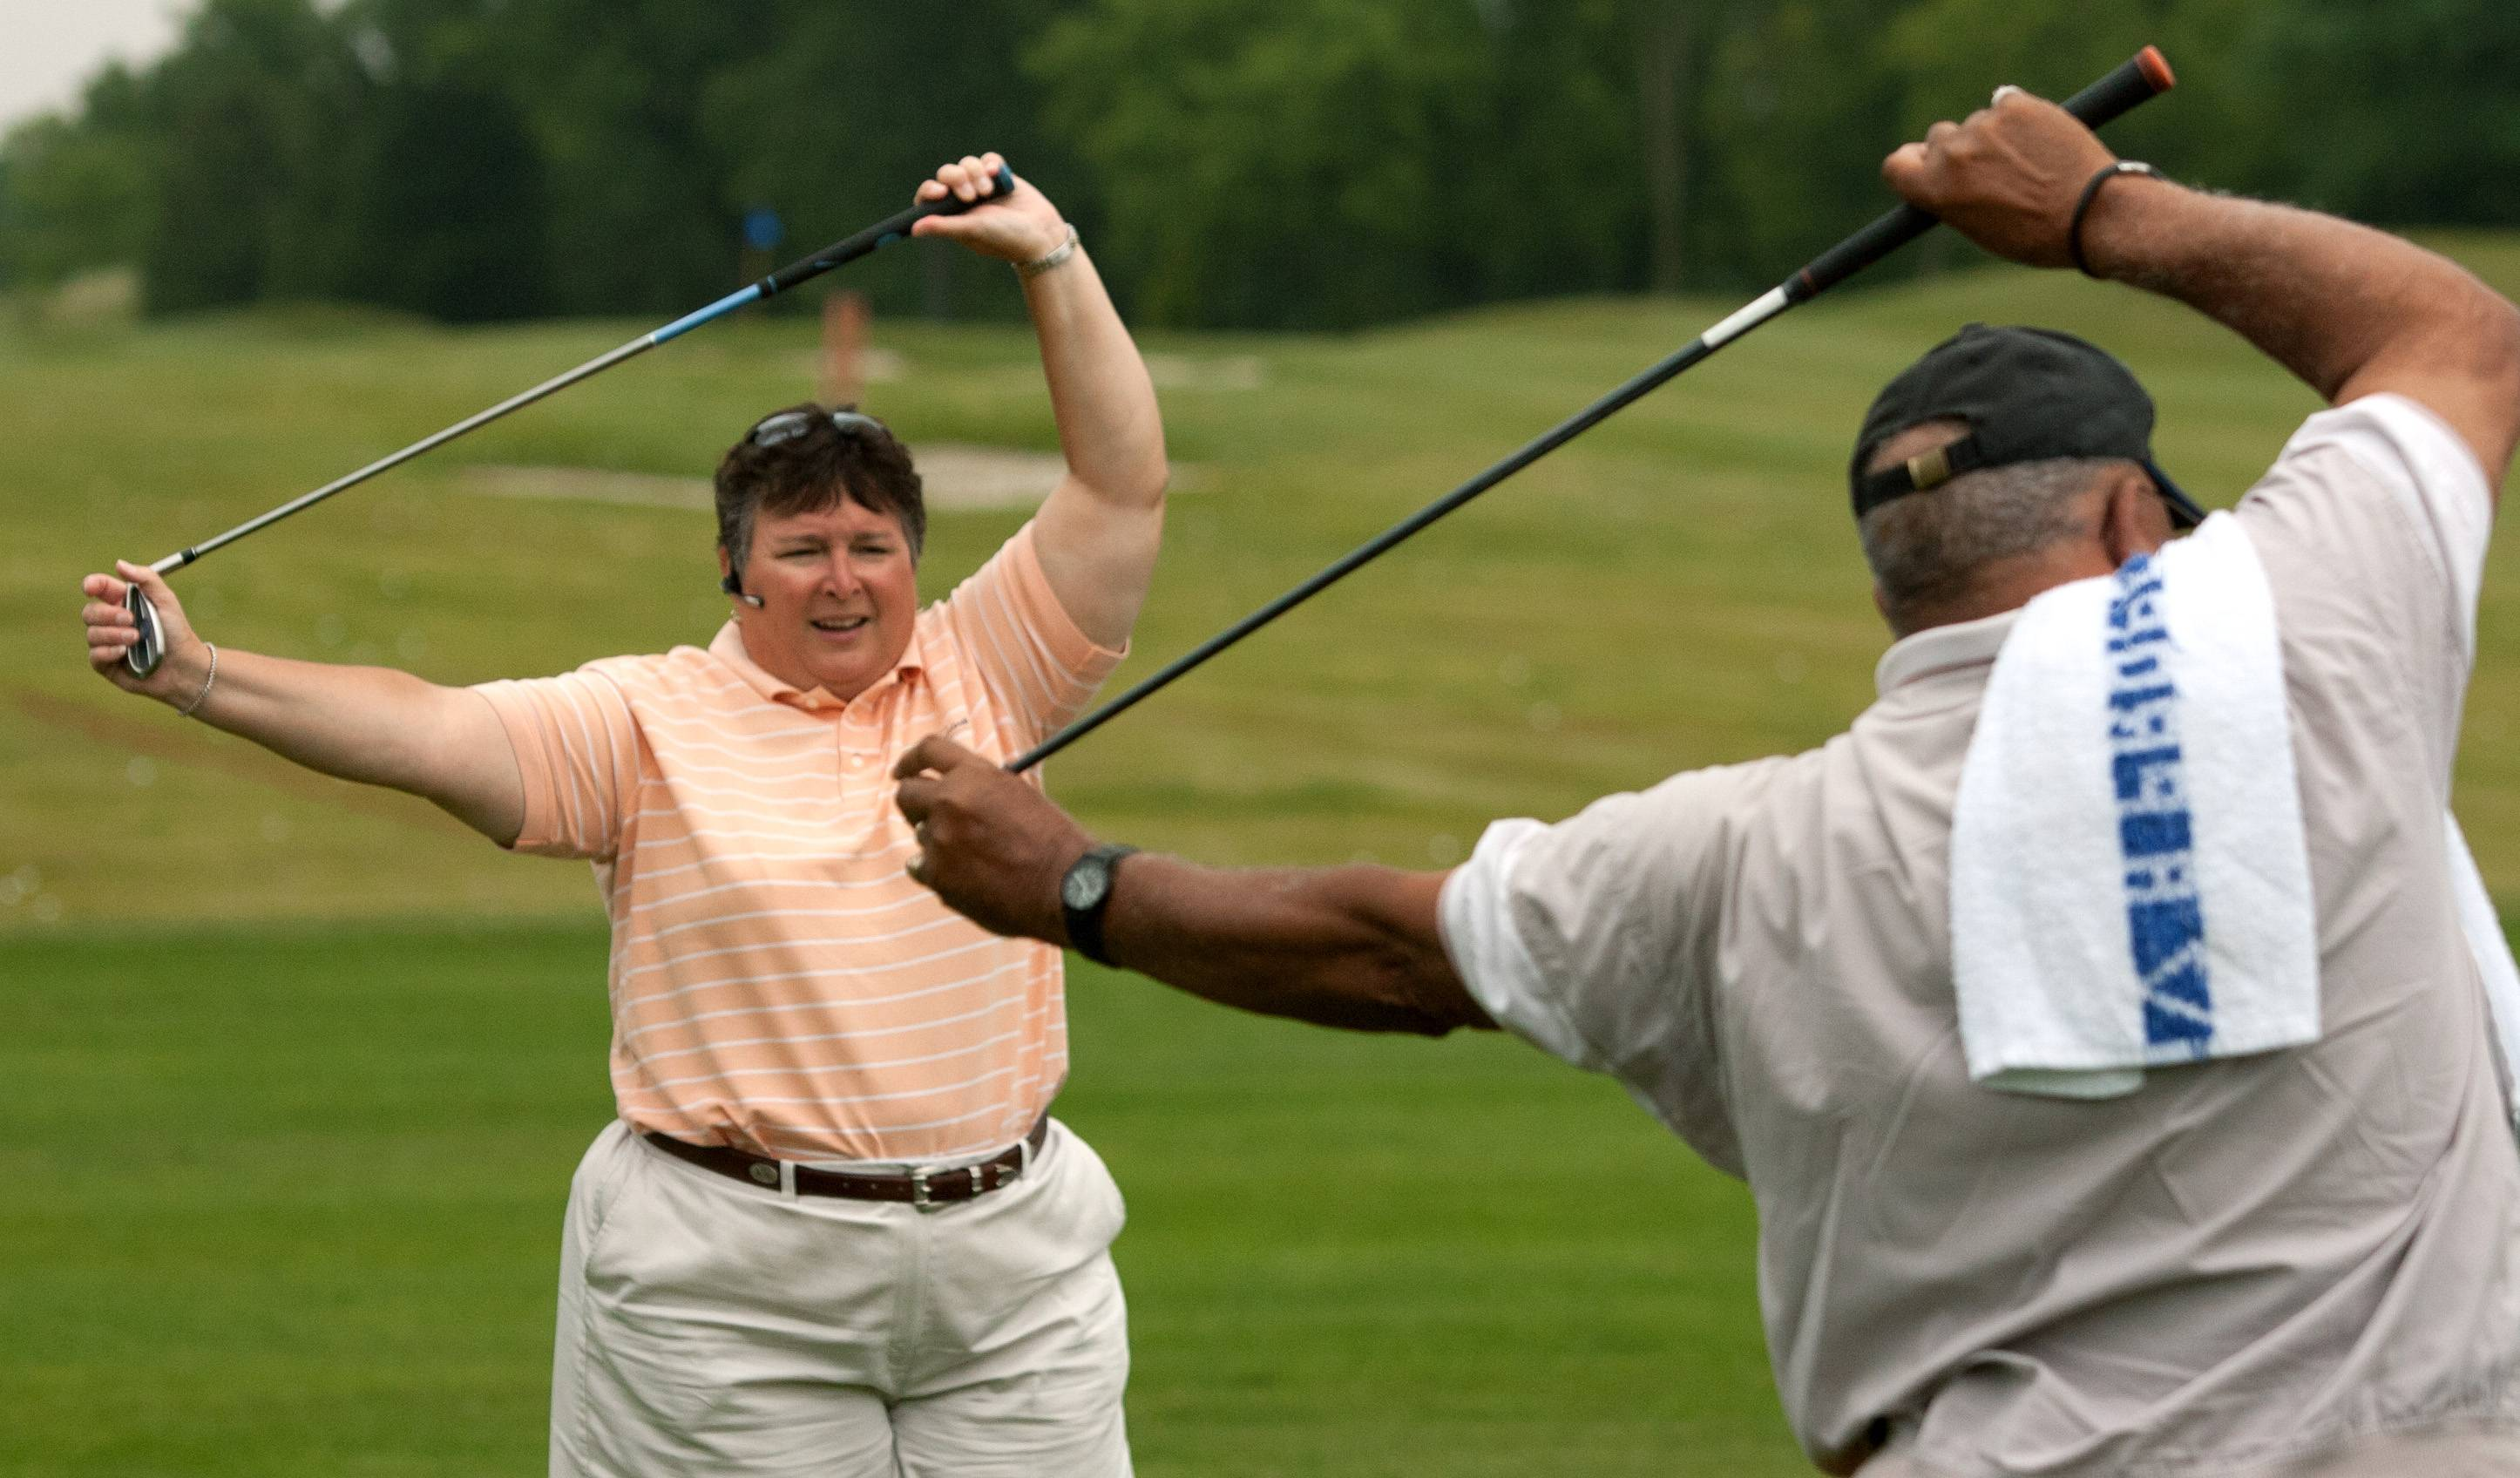 Donna Strum, left, executive director of RevelationGolf, leads stretching exercises at the beginning of a golf clinic for veterans with disabilities.